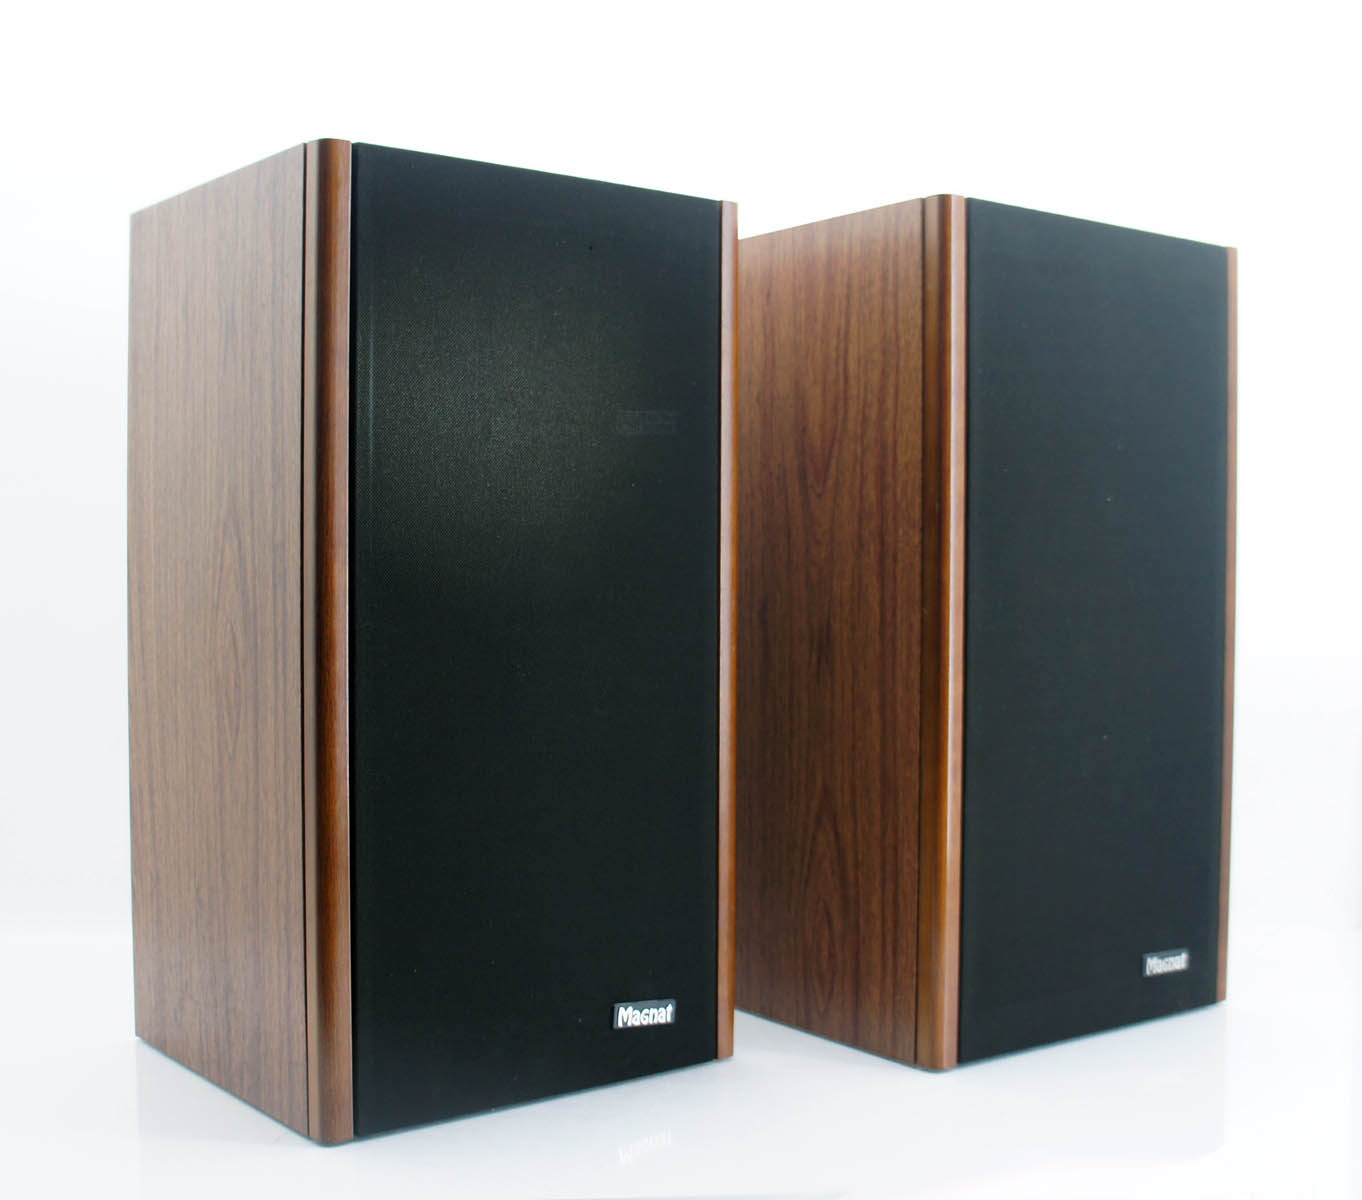 2 x magnat all ribbon 6 lautsprecher boxen speaker 3 wege 8 ohm 100 150 watt. Black Bedroom Furniture Sets. Home Design Ideas